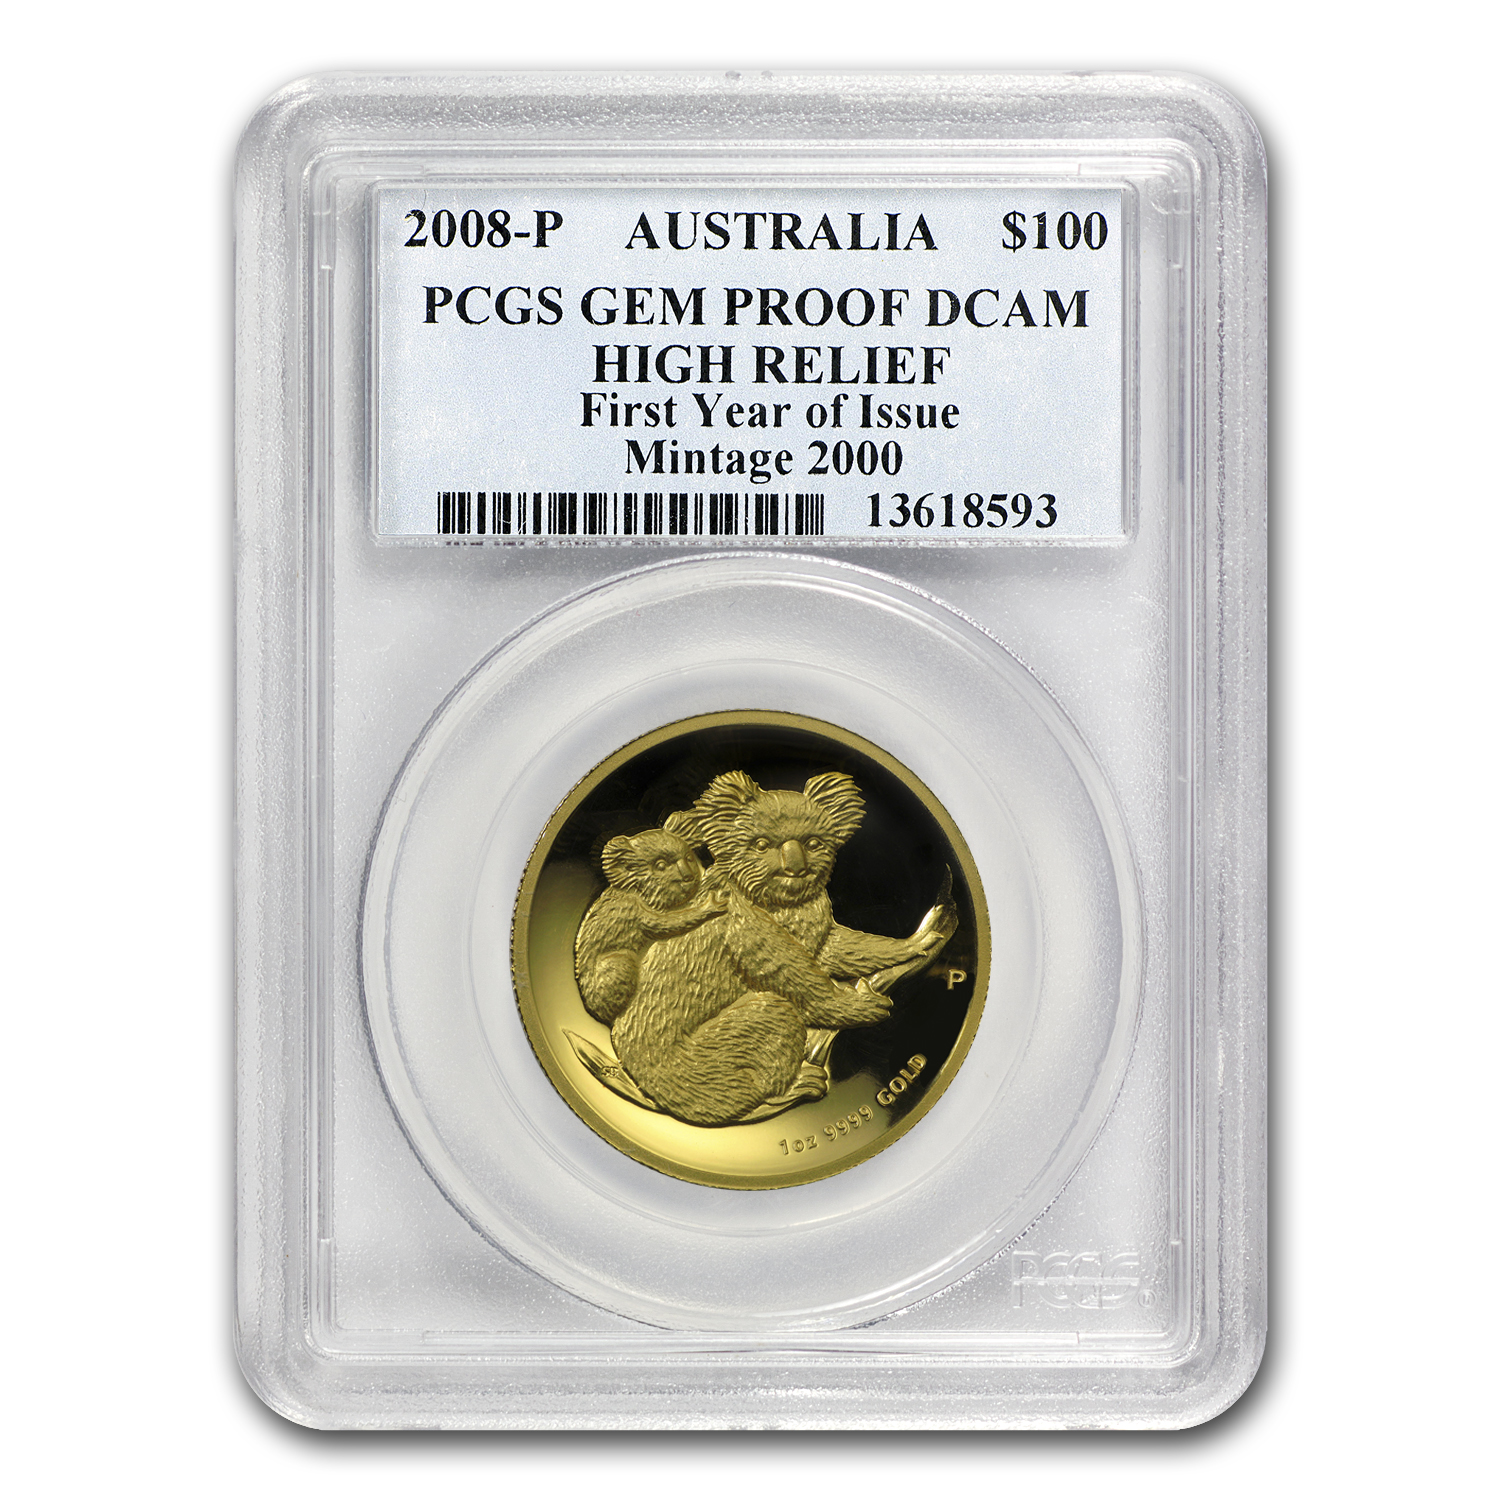 2008-P Australia 1 oz Gold Koala Gem Prf PCGS (High Relief)